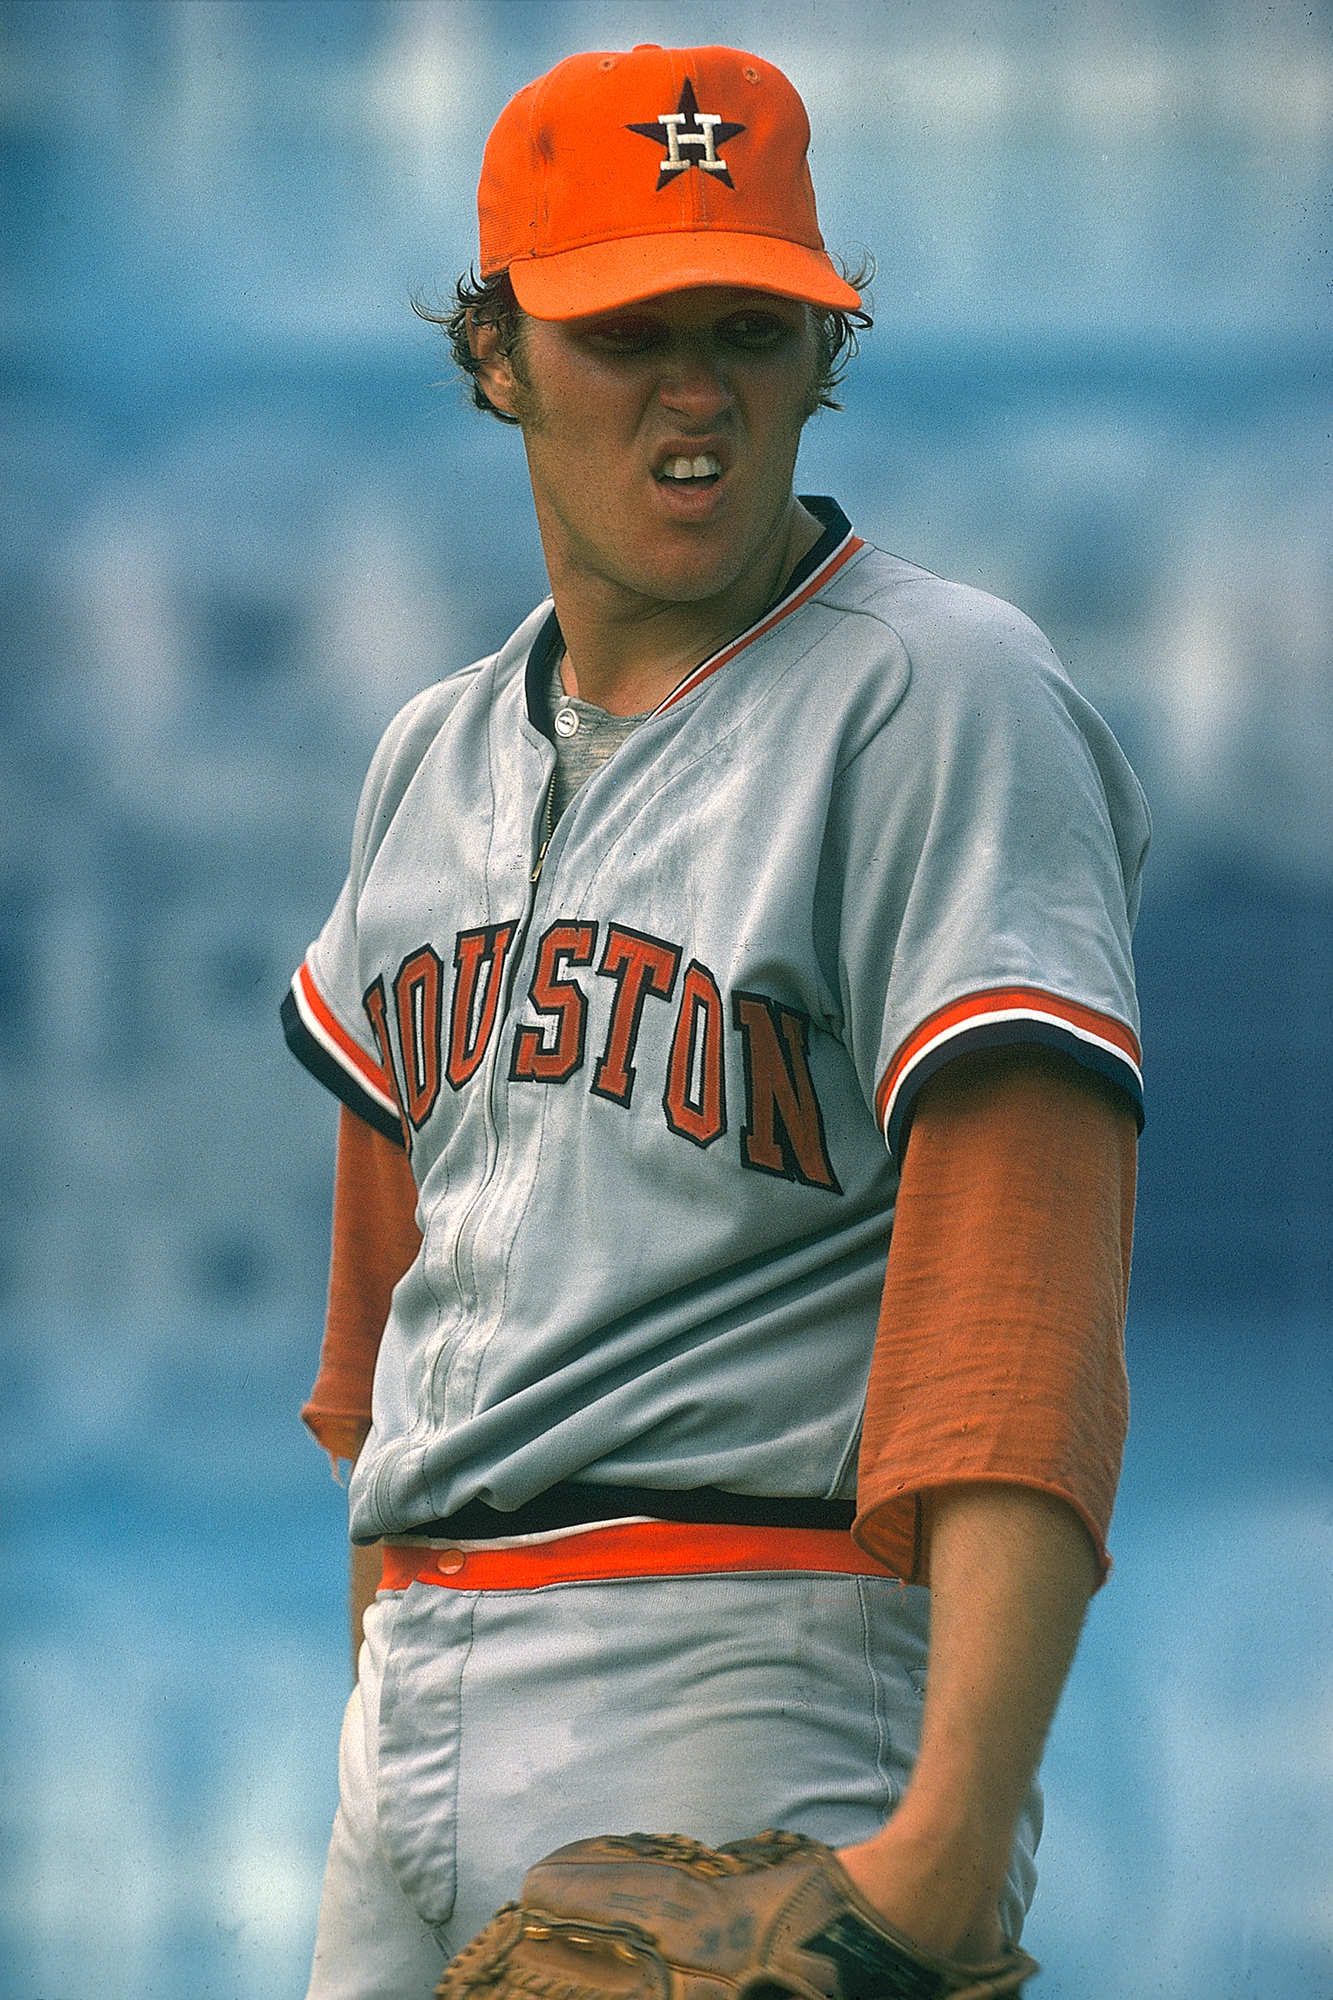 Rookie Pitcher, 1975